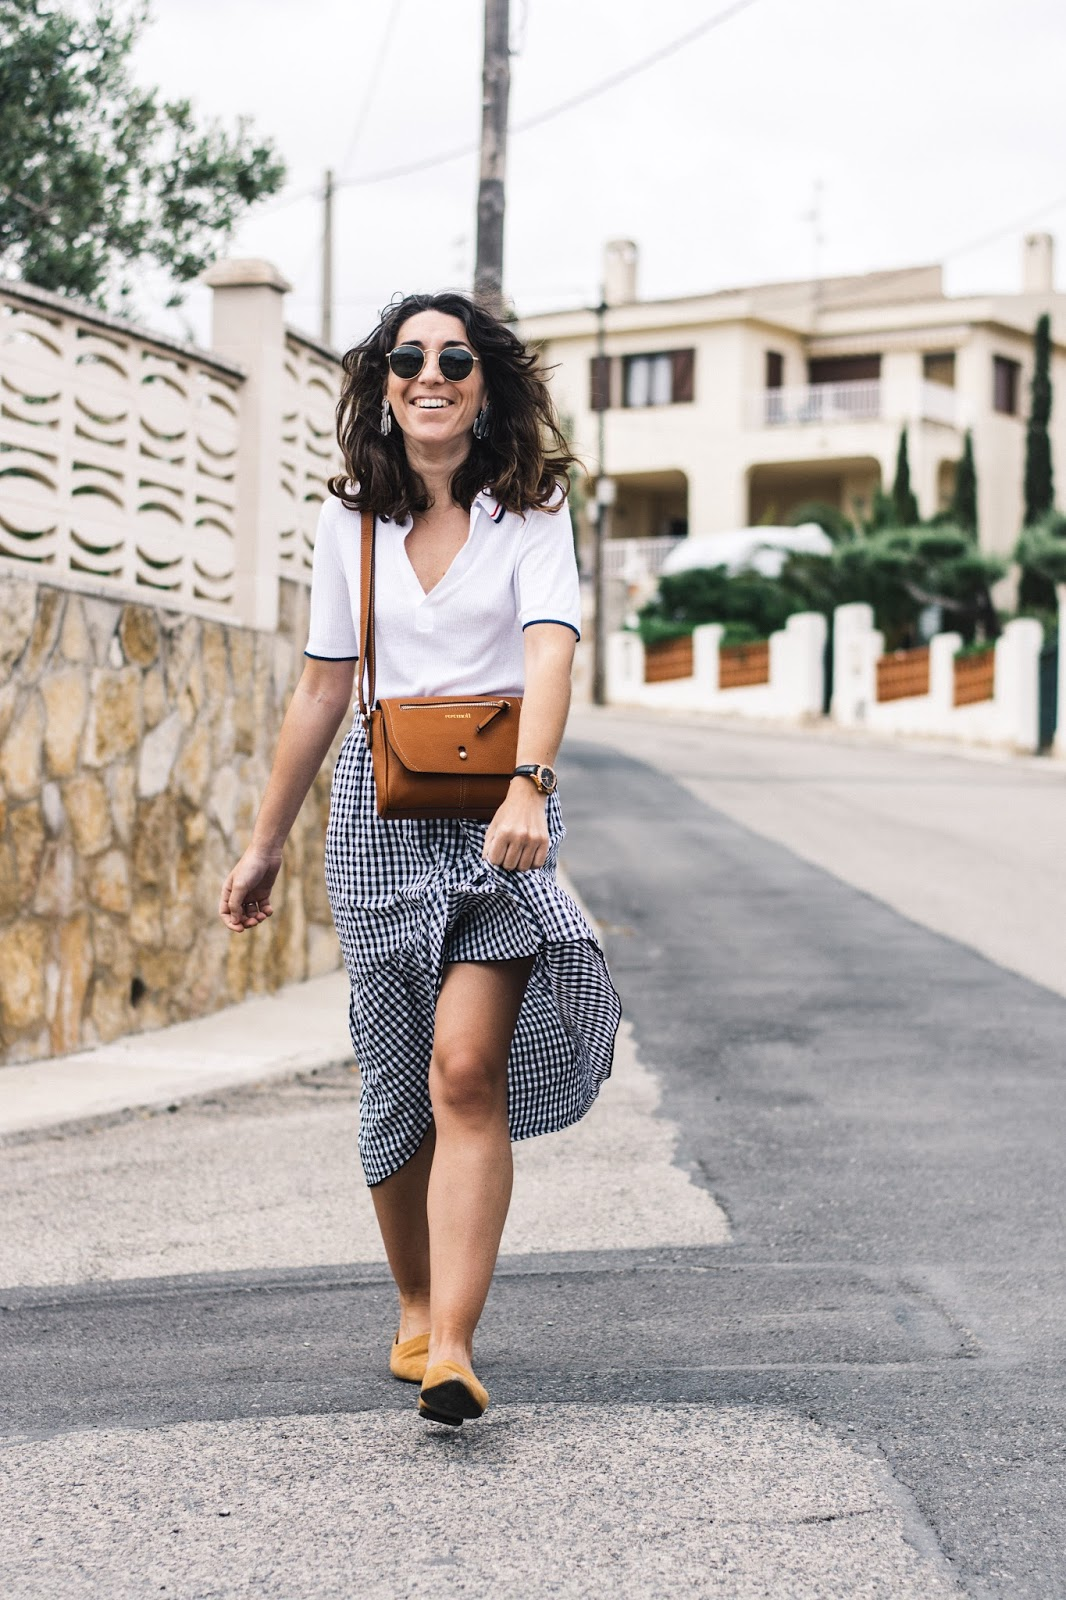 gingham_print_asos_skirt_pepe_moll_bag_hm_slip_on_hm_tennis_top-3